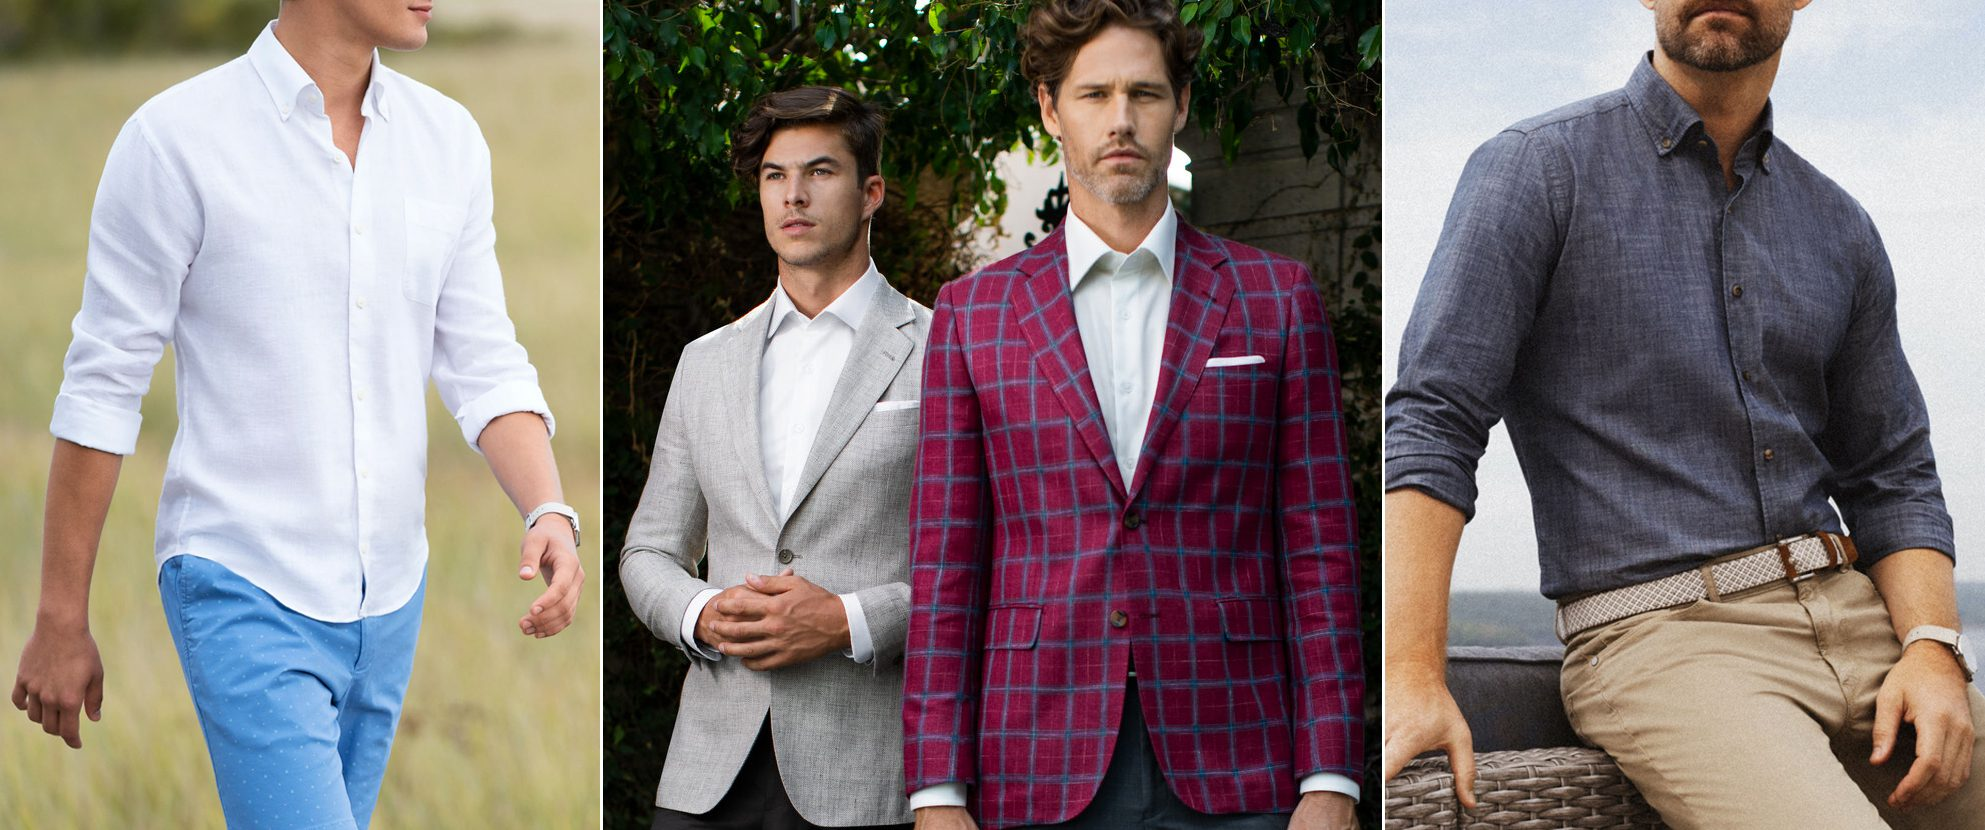 Don Alans Menswear - Pensacola: Style Sessions